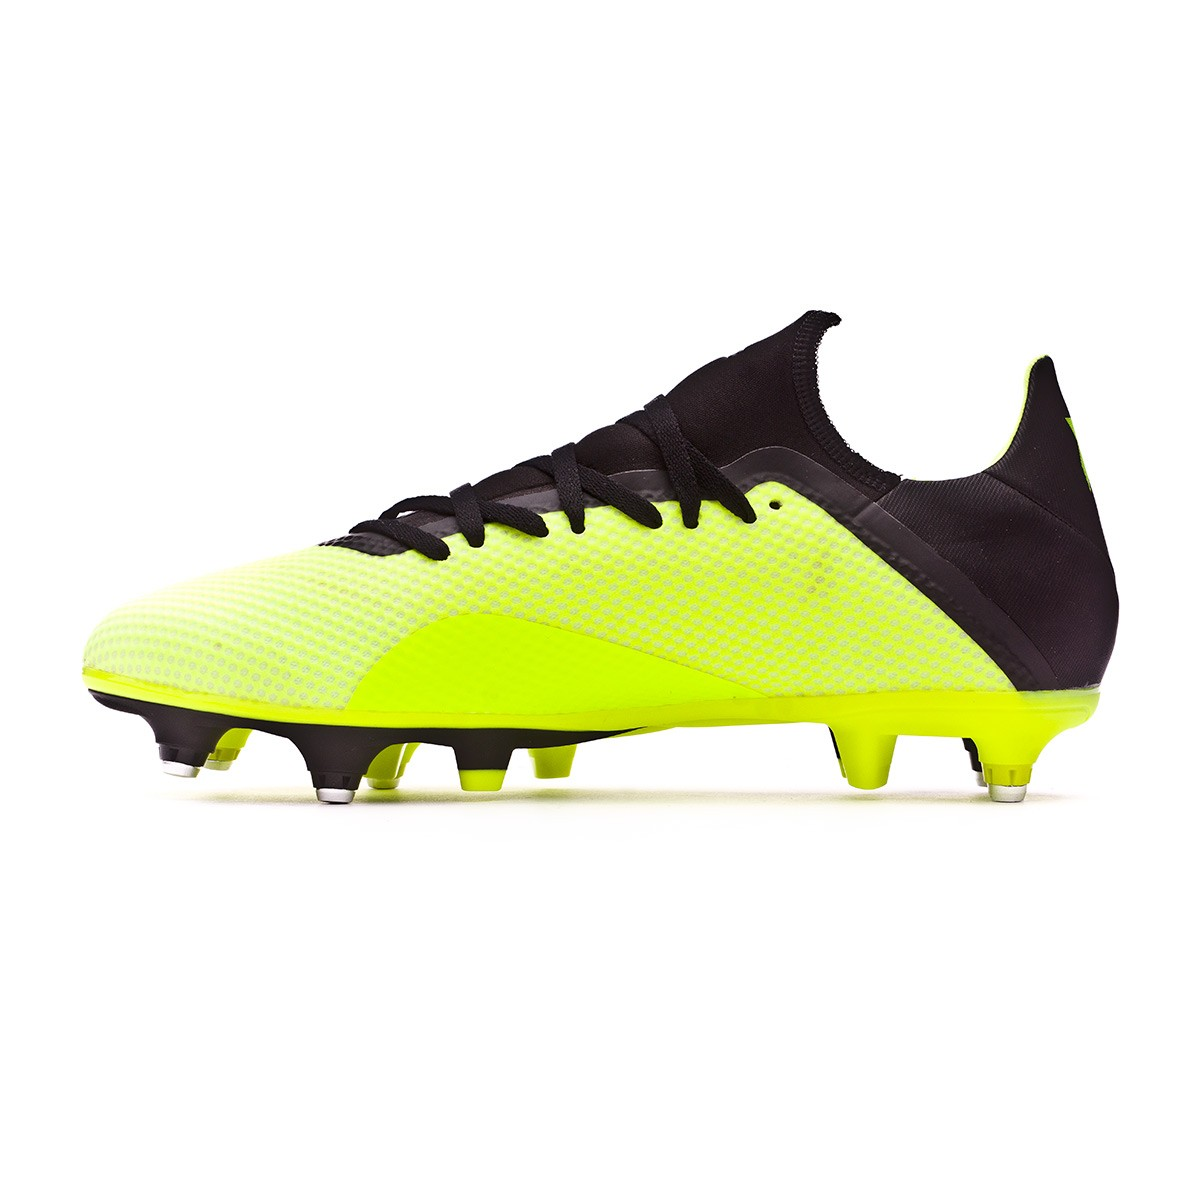 Bota X 18.3 SG Solar yellow Core black White